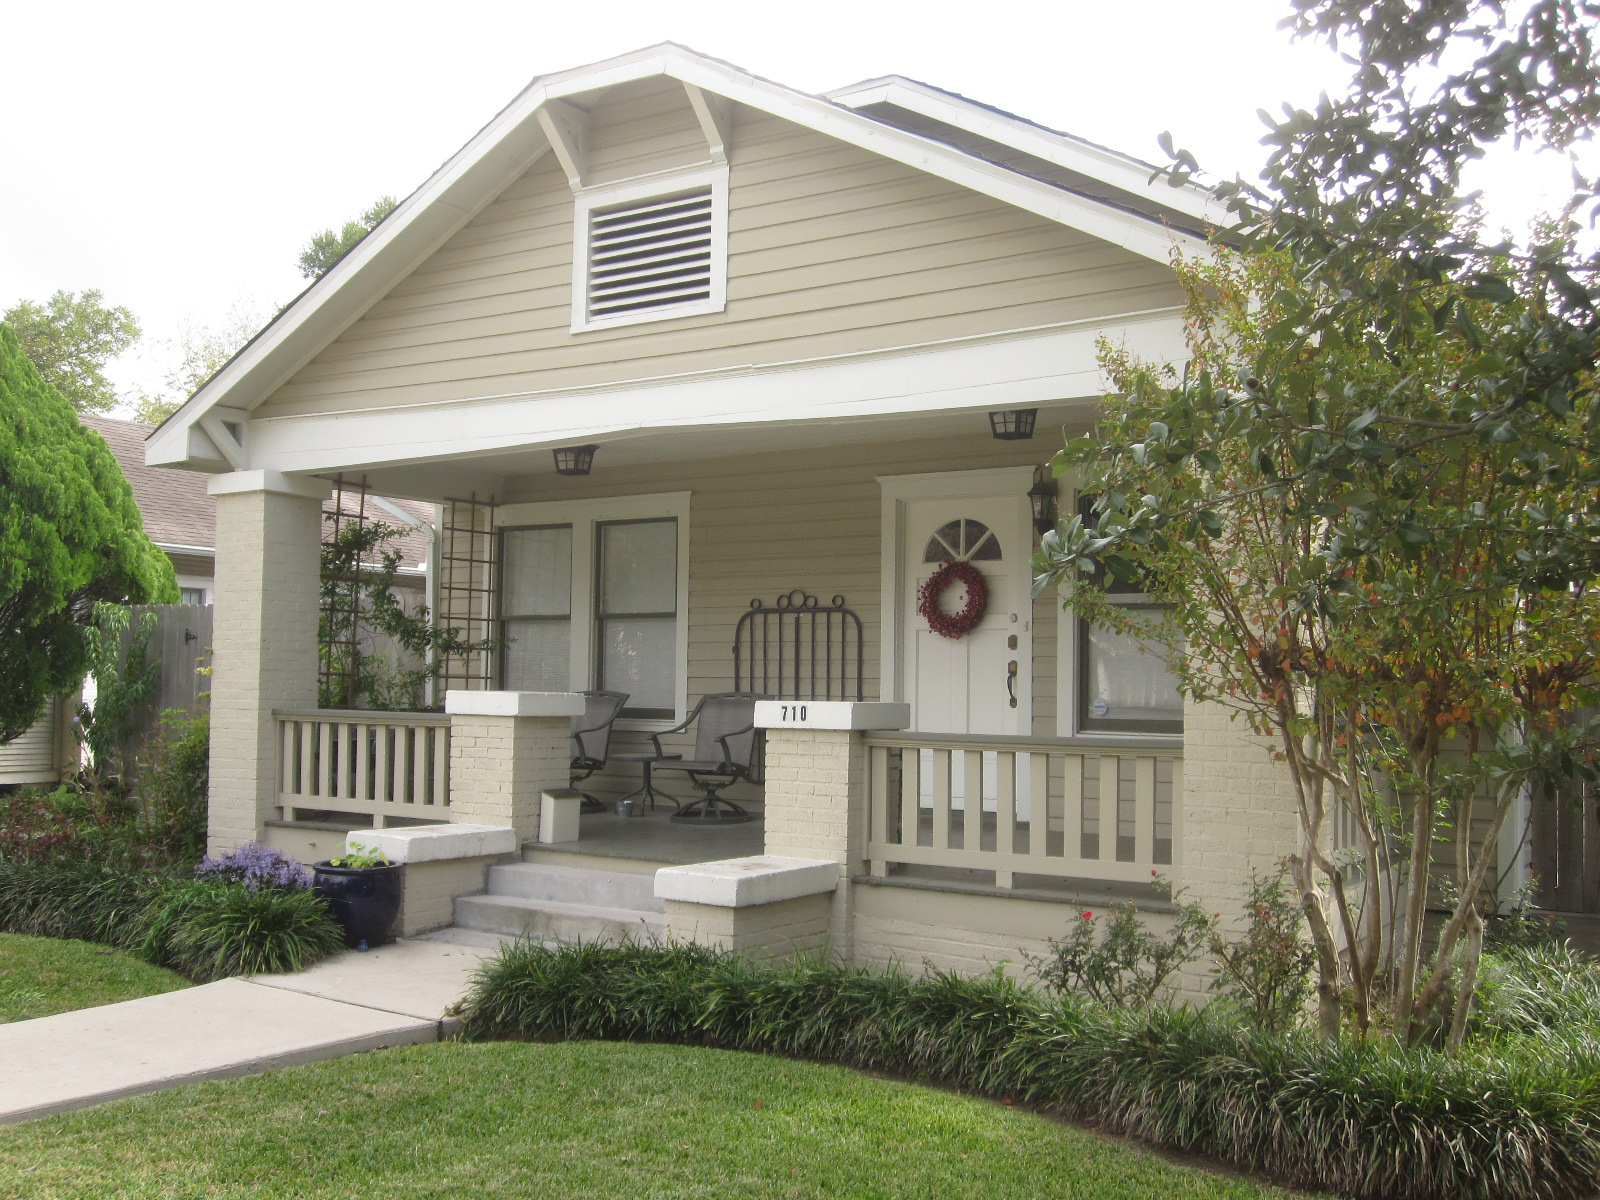 The other houston more beautiful bungalow paint colors - Beautiful exterior house paint colors ...